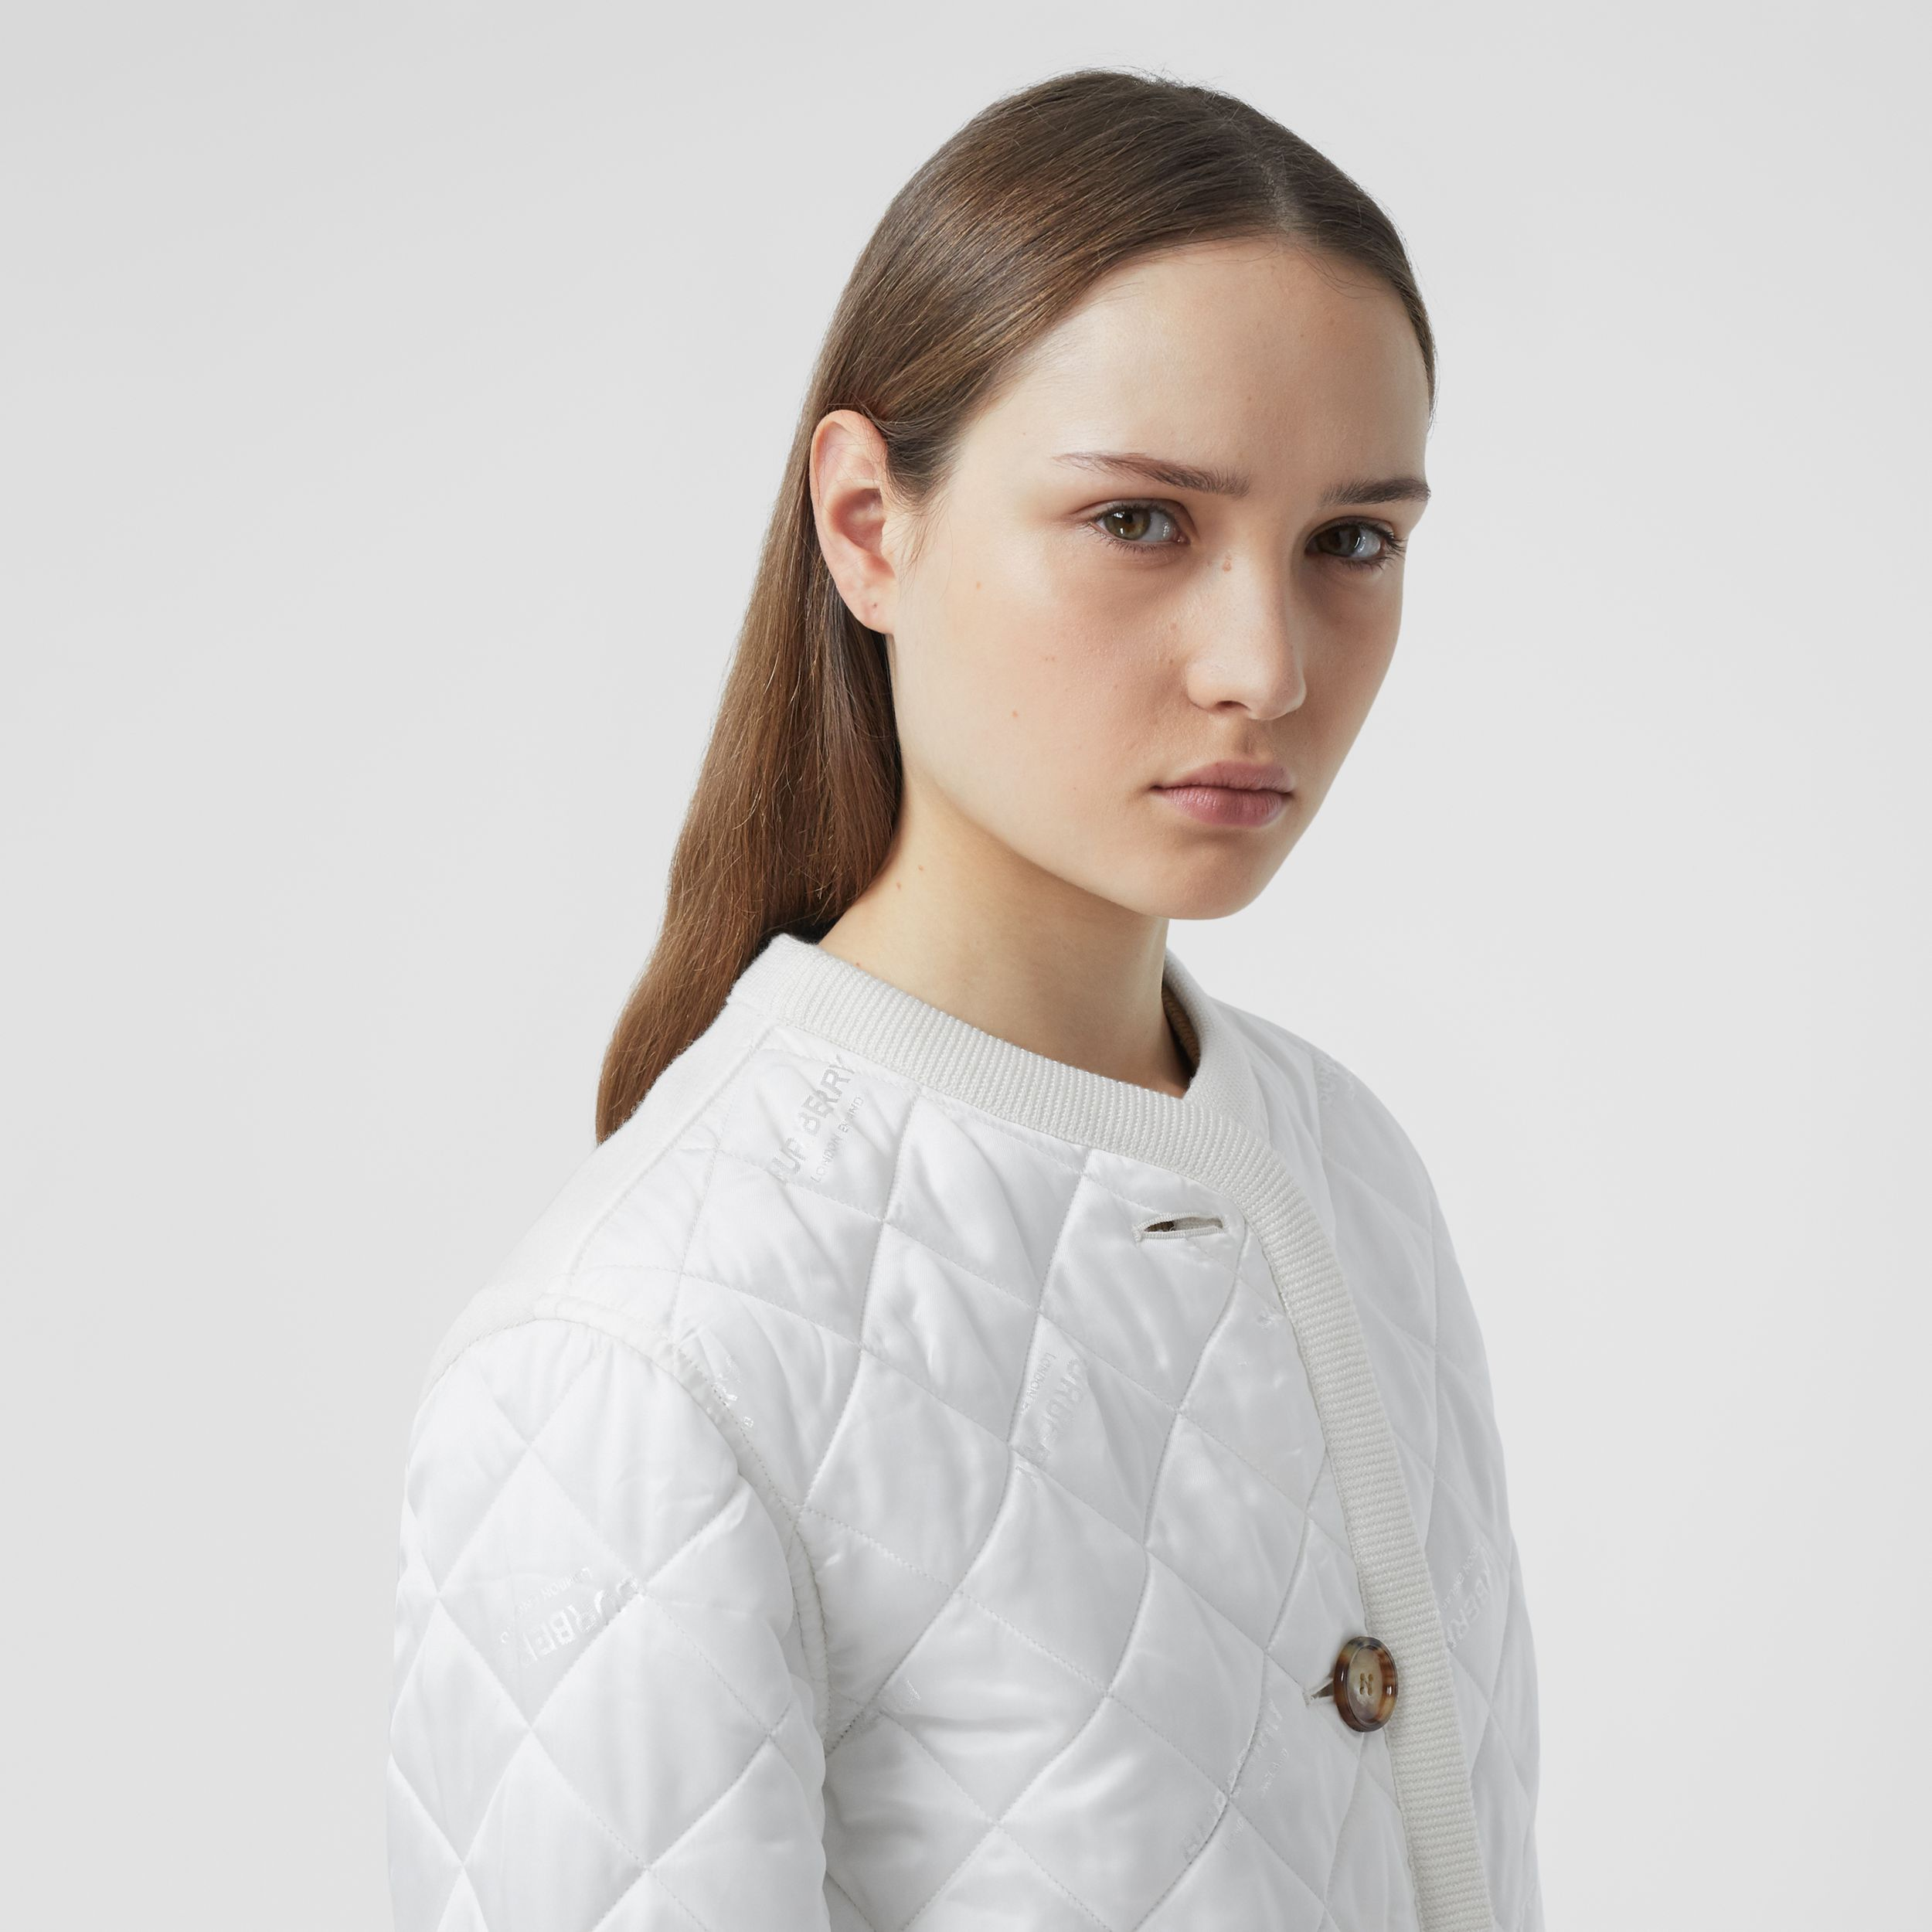 Logo Jacquard Diamond Quilted and Wool Blend Jacket in White - Women | Burberry - 2